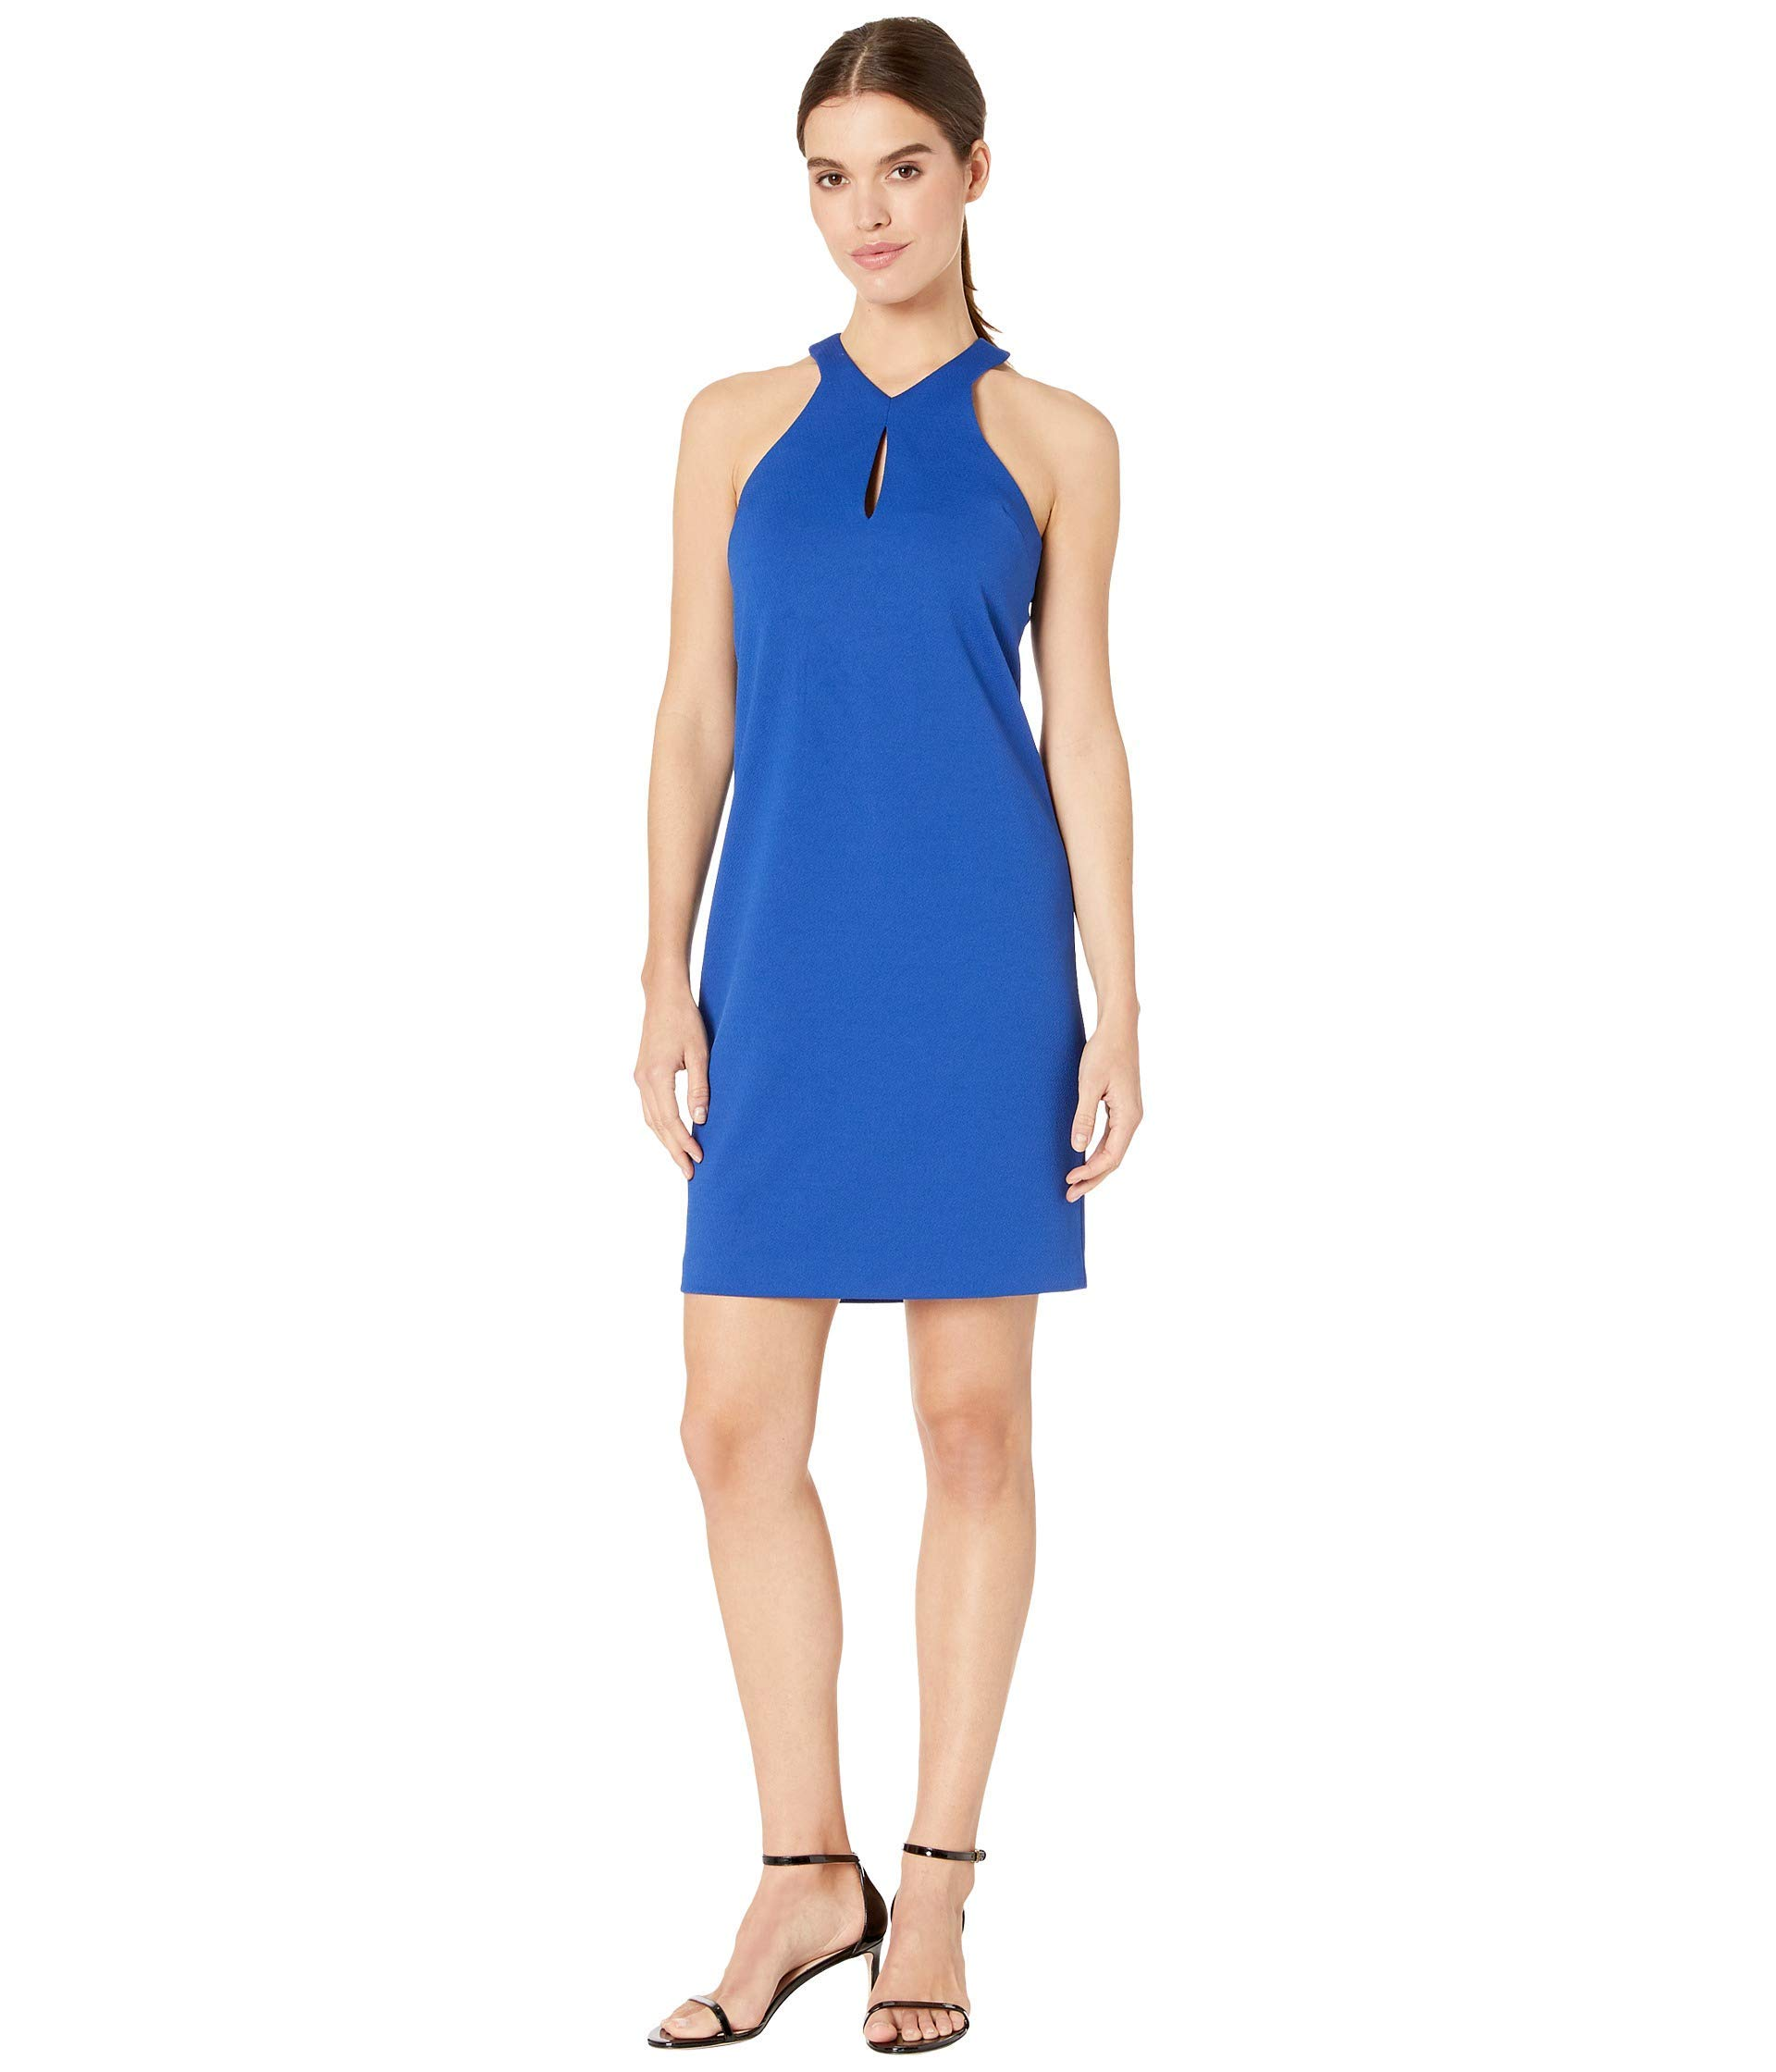 Available at Amazon: Trina Turk Women's Honor Dress